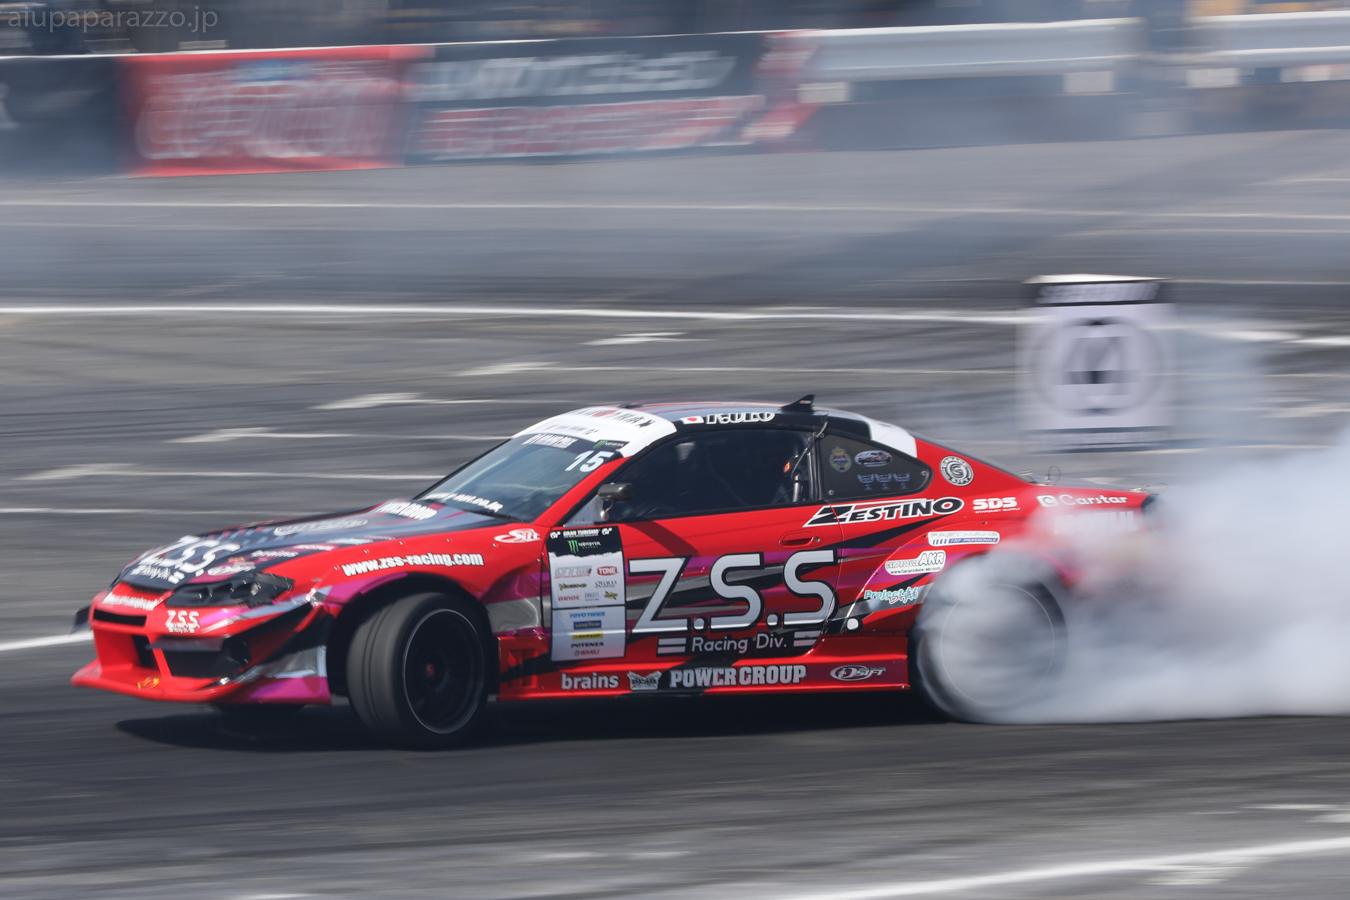 d1gp_tan2016lap3-19.jpg